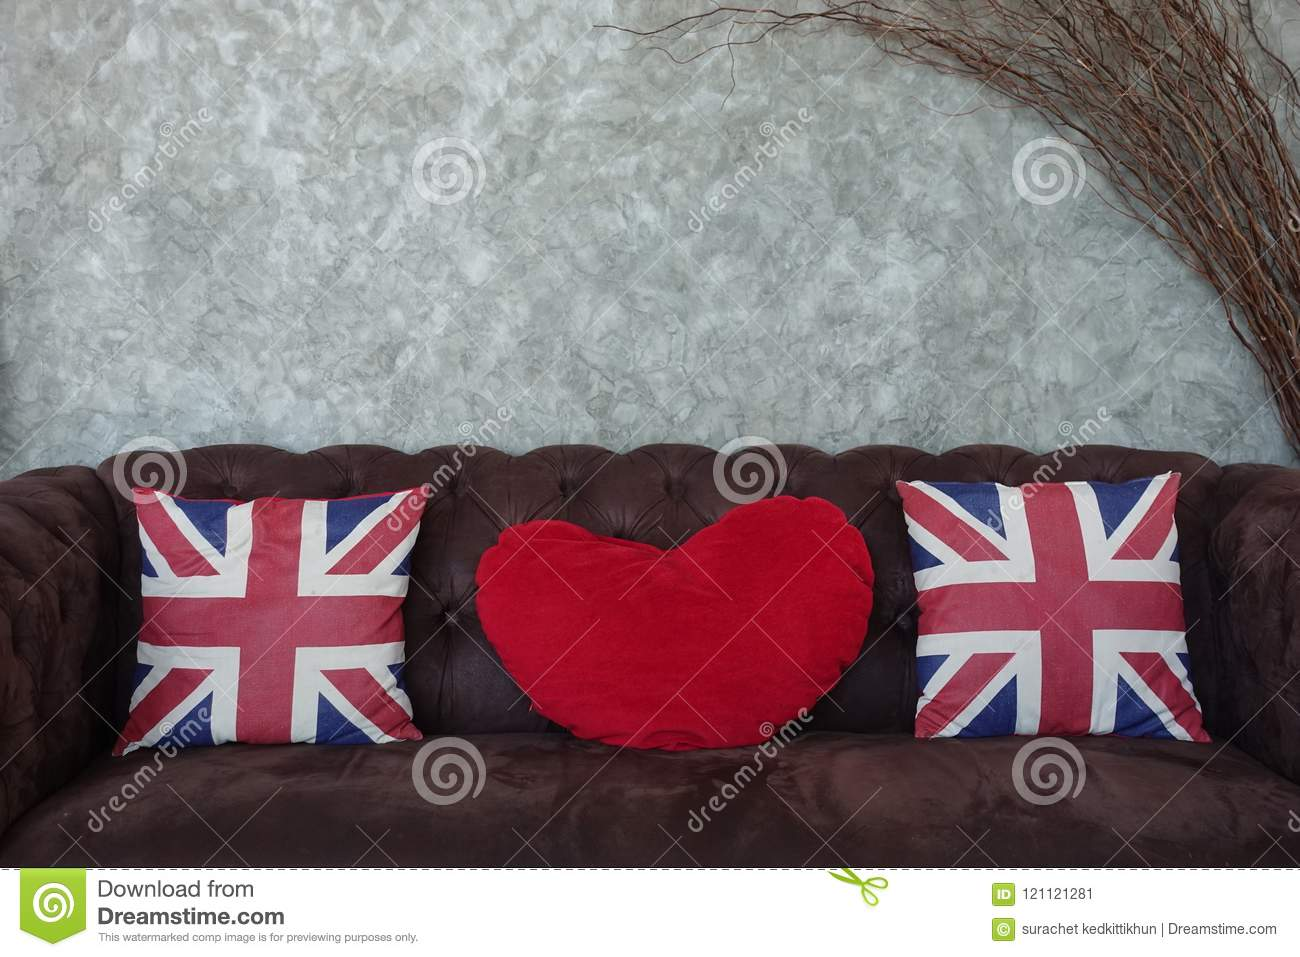 Union Jack Flag And Red Heart Pillow On Brown Sofa Pillow Decoration